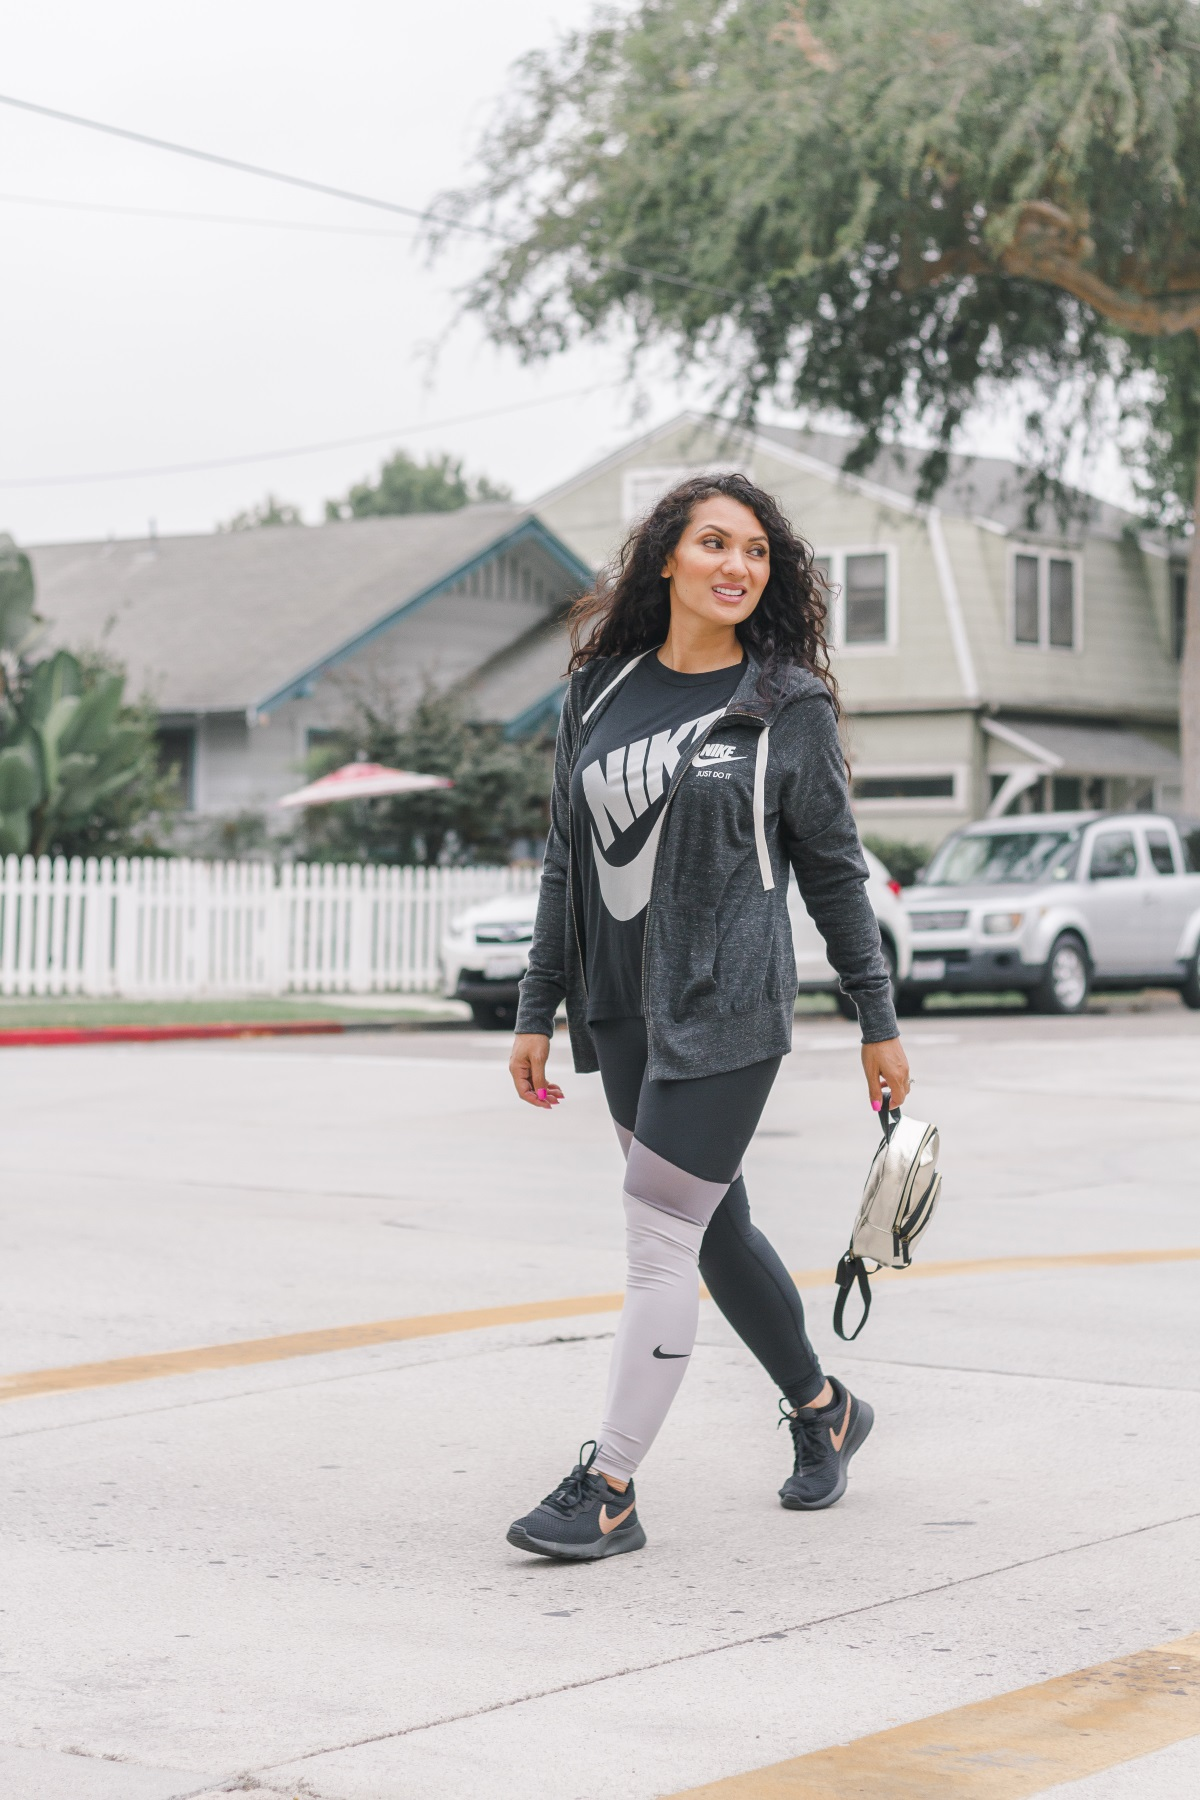 5 Fall Fitness Tips | JCPenney Fashion + Nike Athletic Wear | Debbie Savage Orange County Lifestyle Blogger of To Thine Own Style Be True